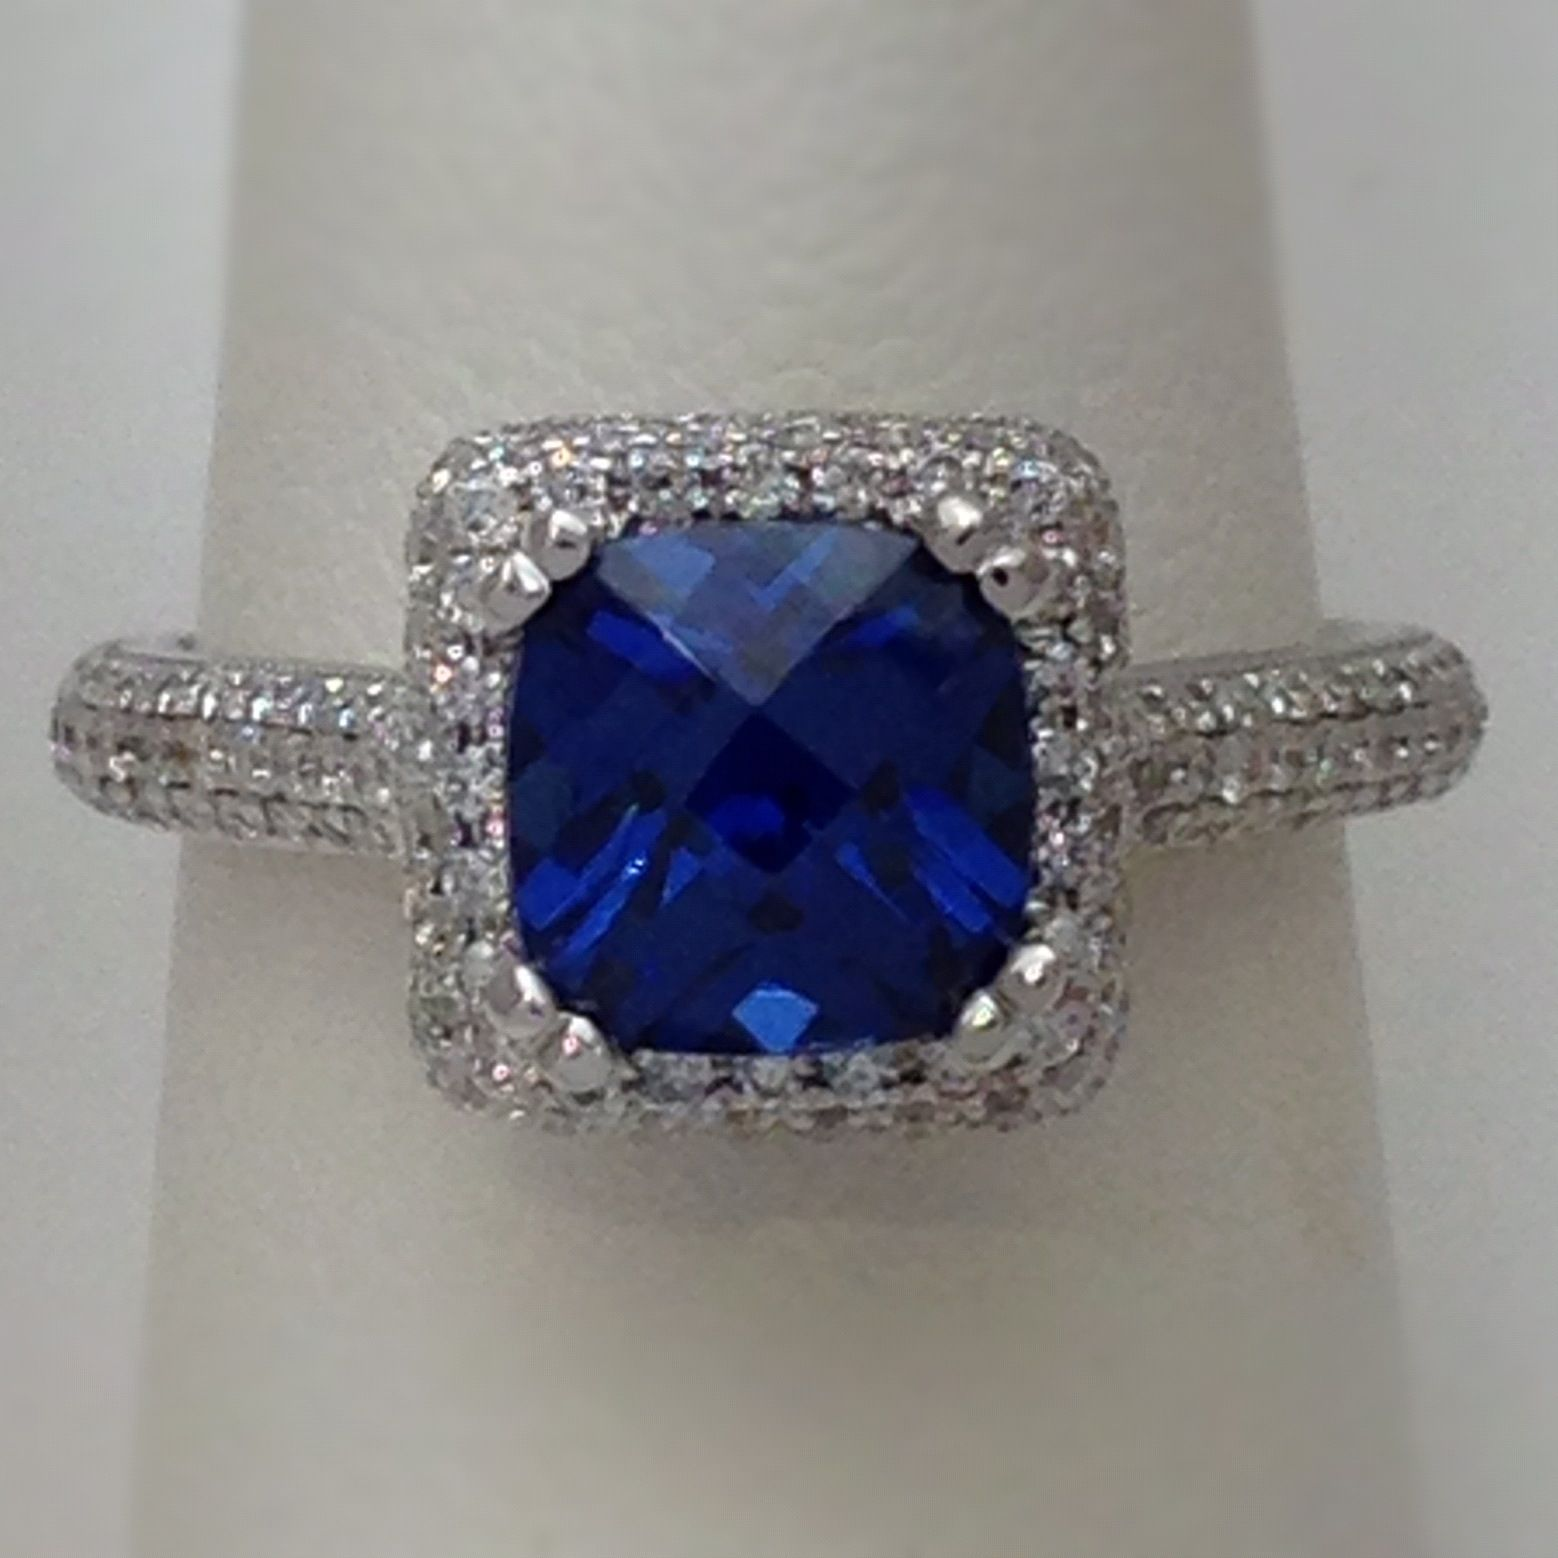 Cushion cut Sapphire and Diamond engagement ring.  The setting is a pave set, halo style ring.